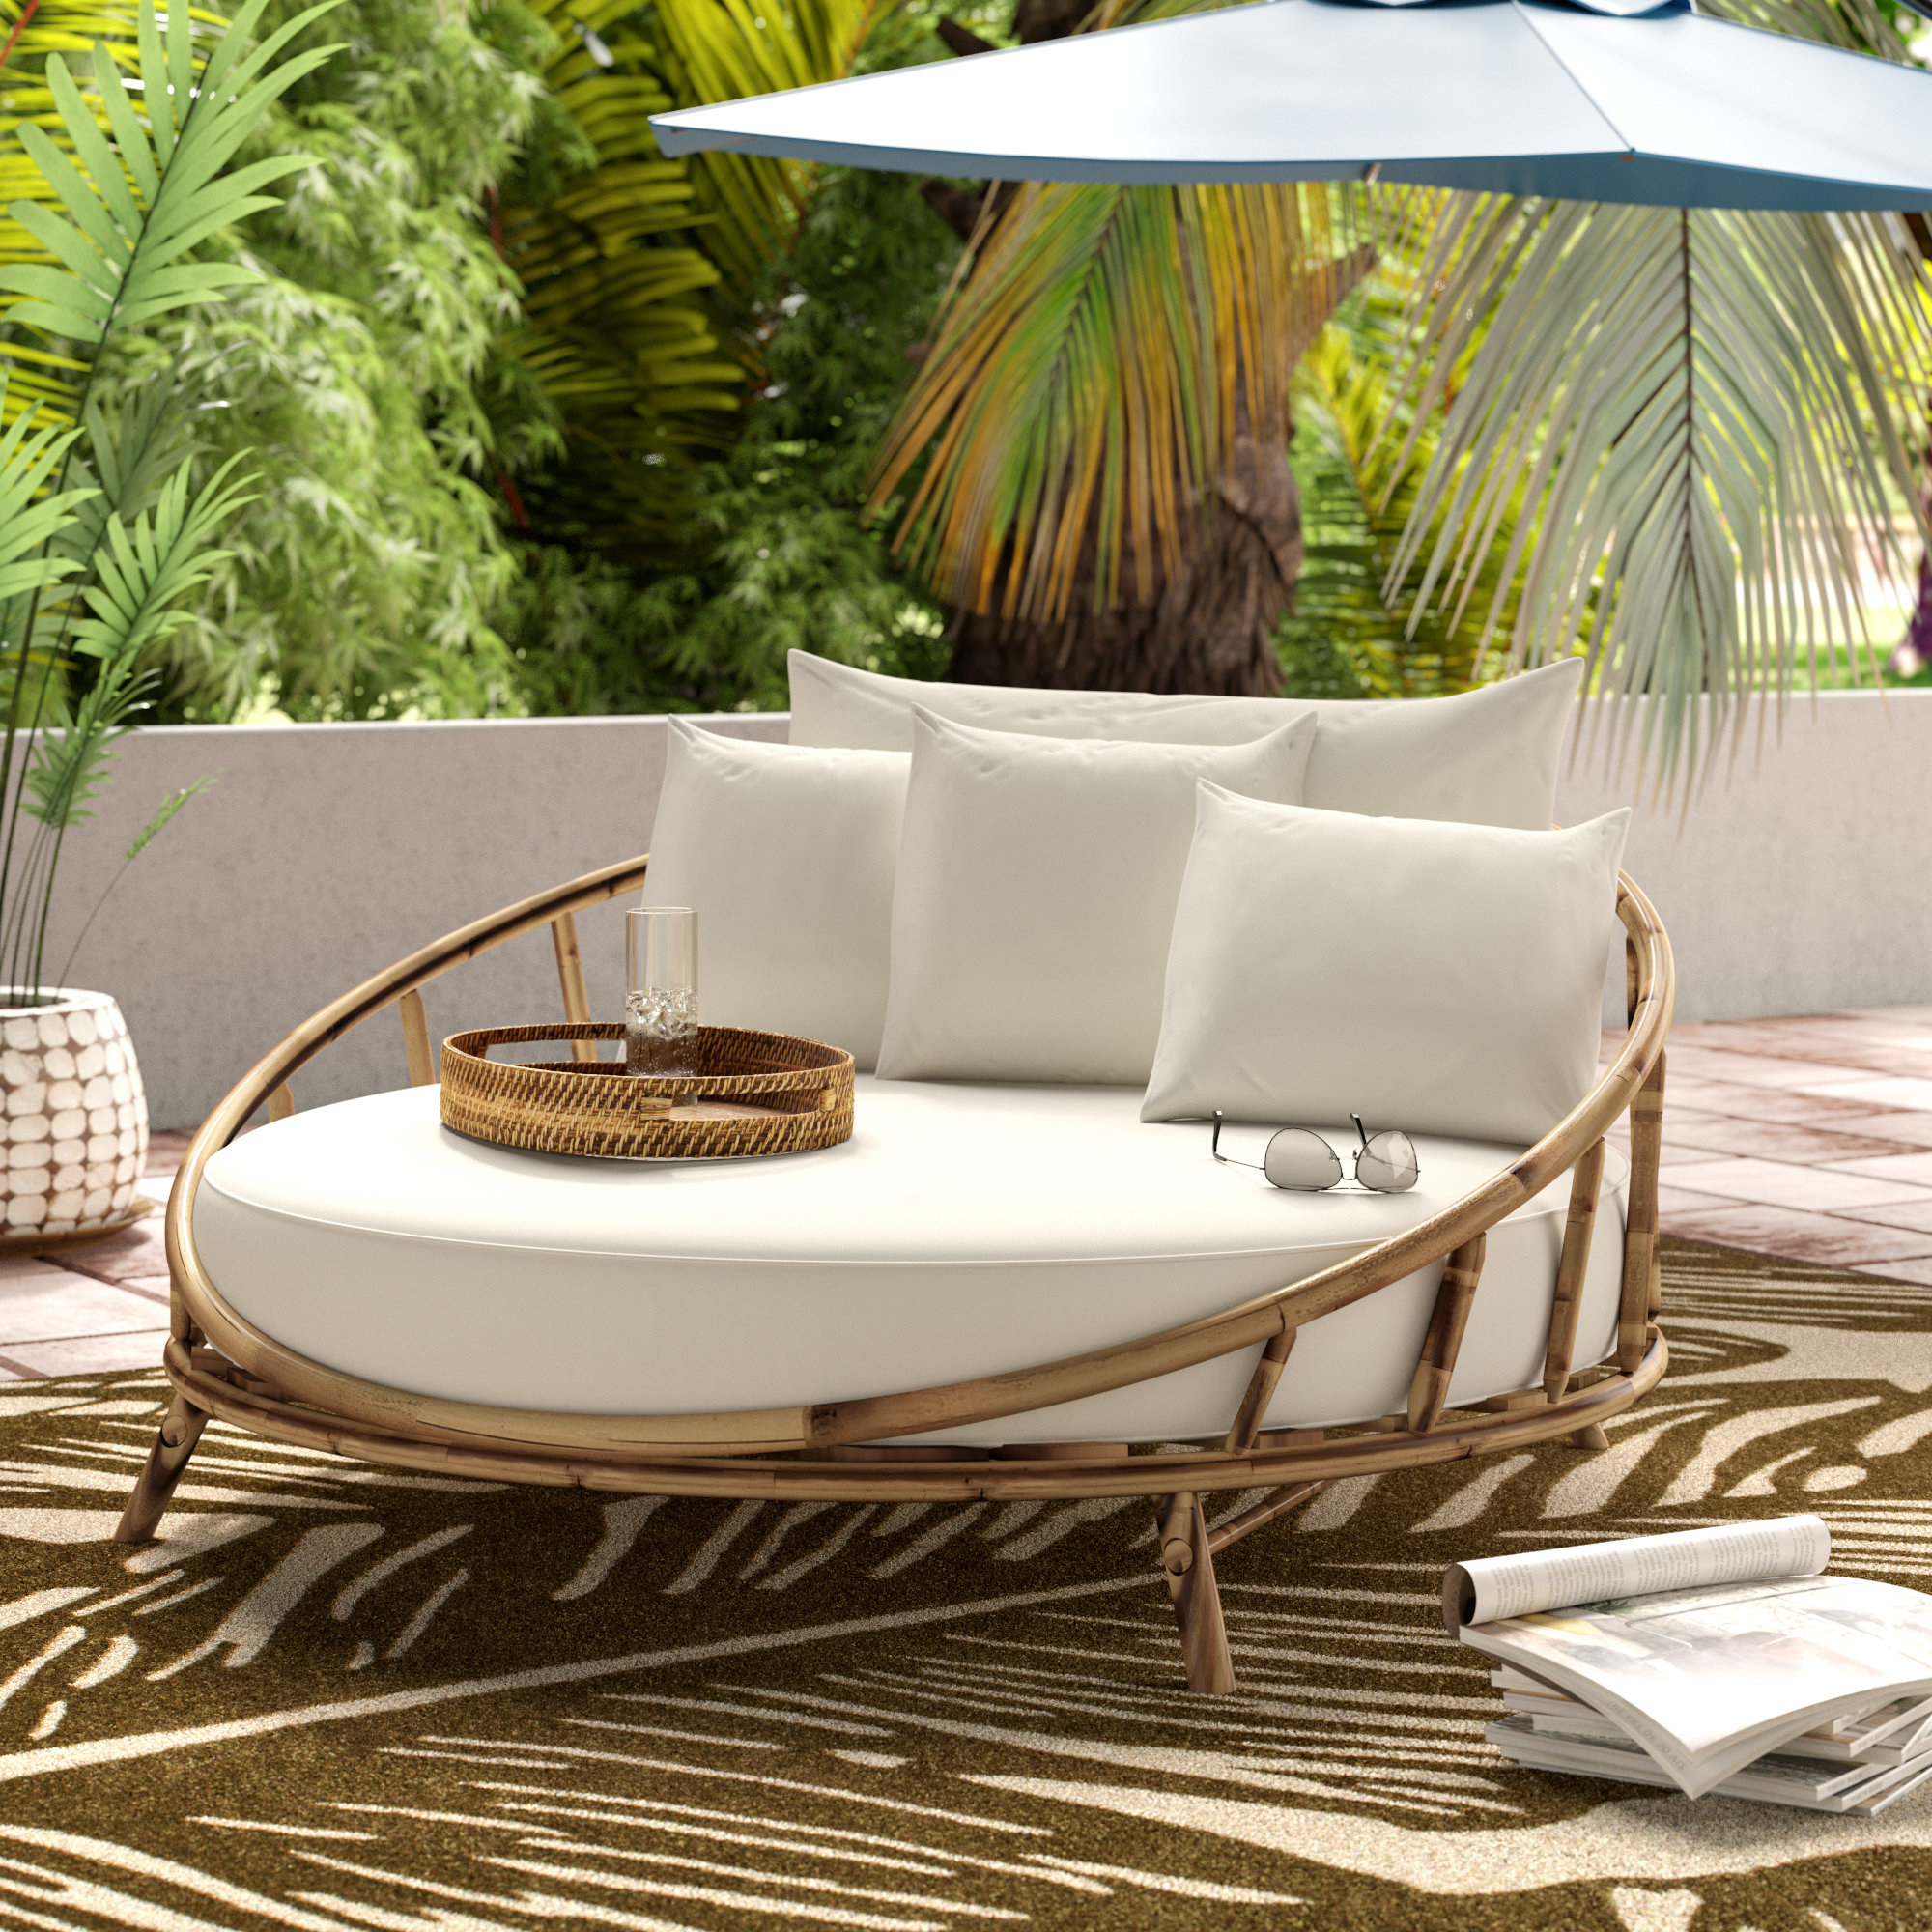 Bayou Breeze Olu Bamboo Large Round Patio Daybed With Cushions Intended For Well Known Beal Patio Daybeds With Cushions (Gallery 5 of 25)